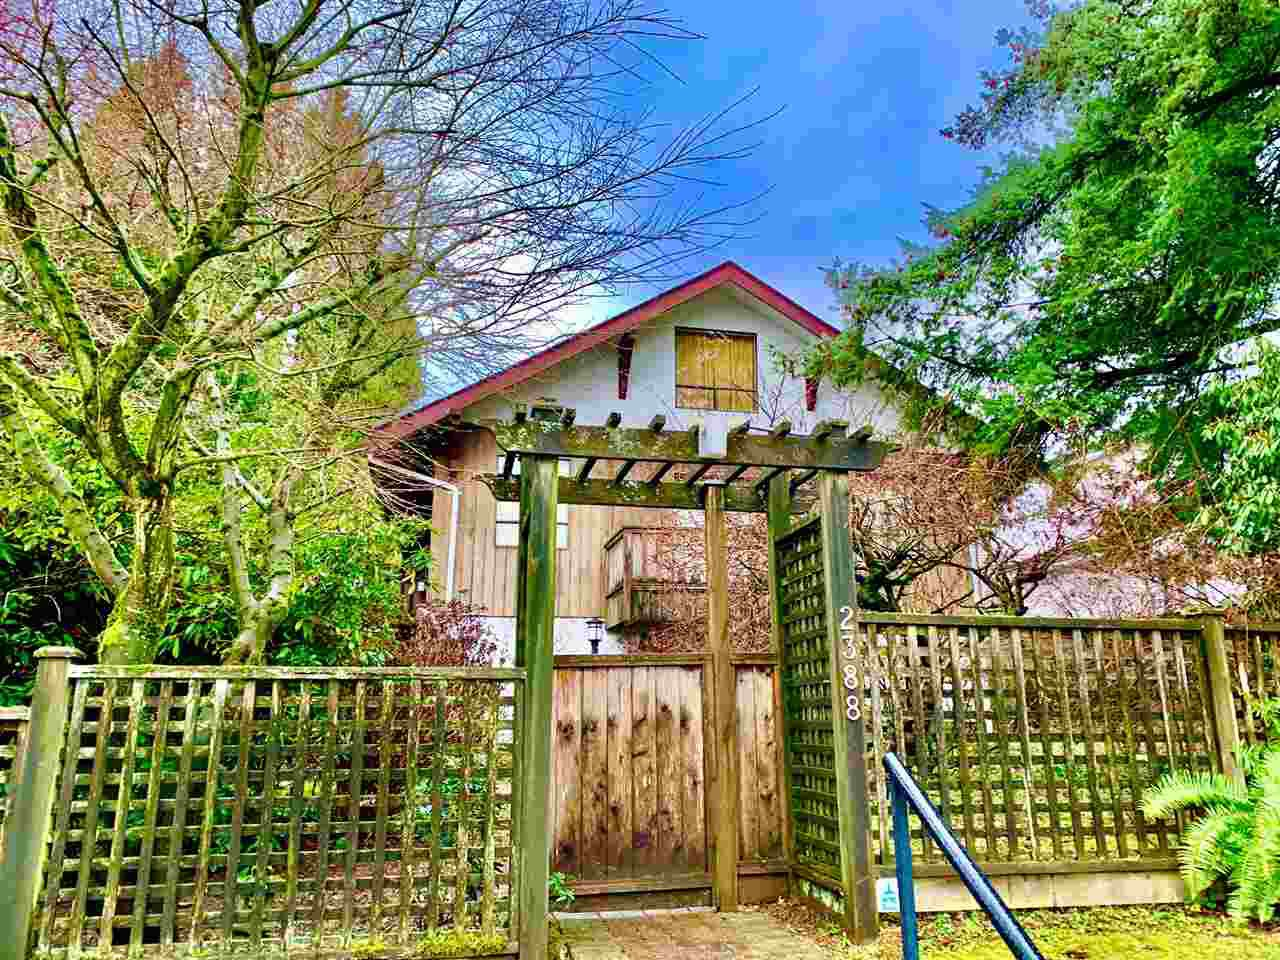 Photo 3: Photos: 2388 W 34 Avenue in Vancouver: Quilchena House for sale (Vancouver West)  : MLS®# R2431261